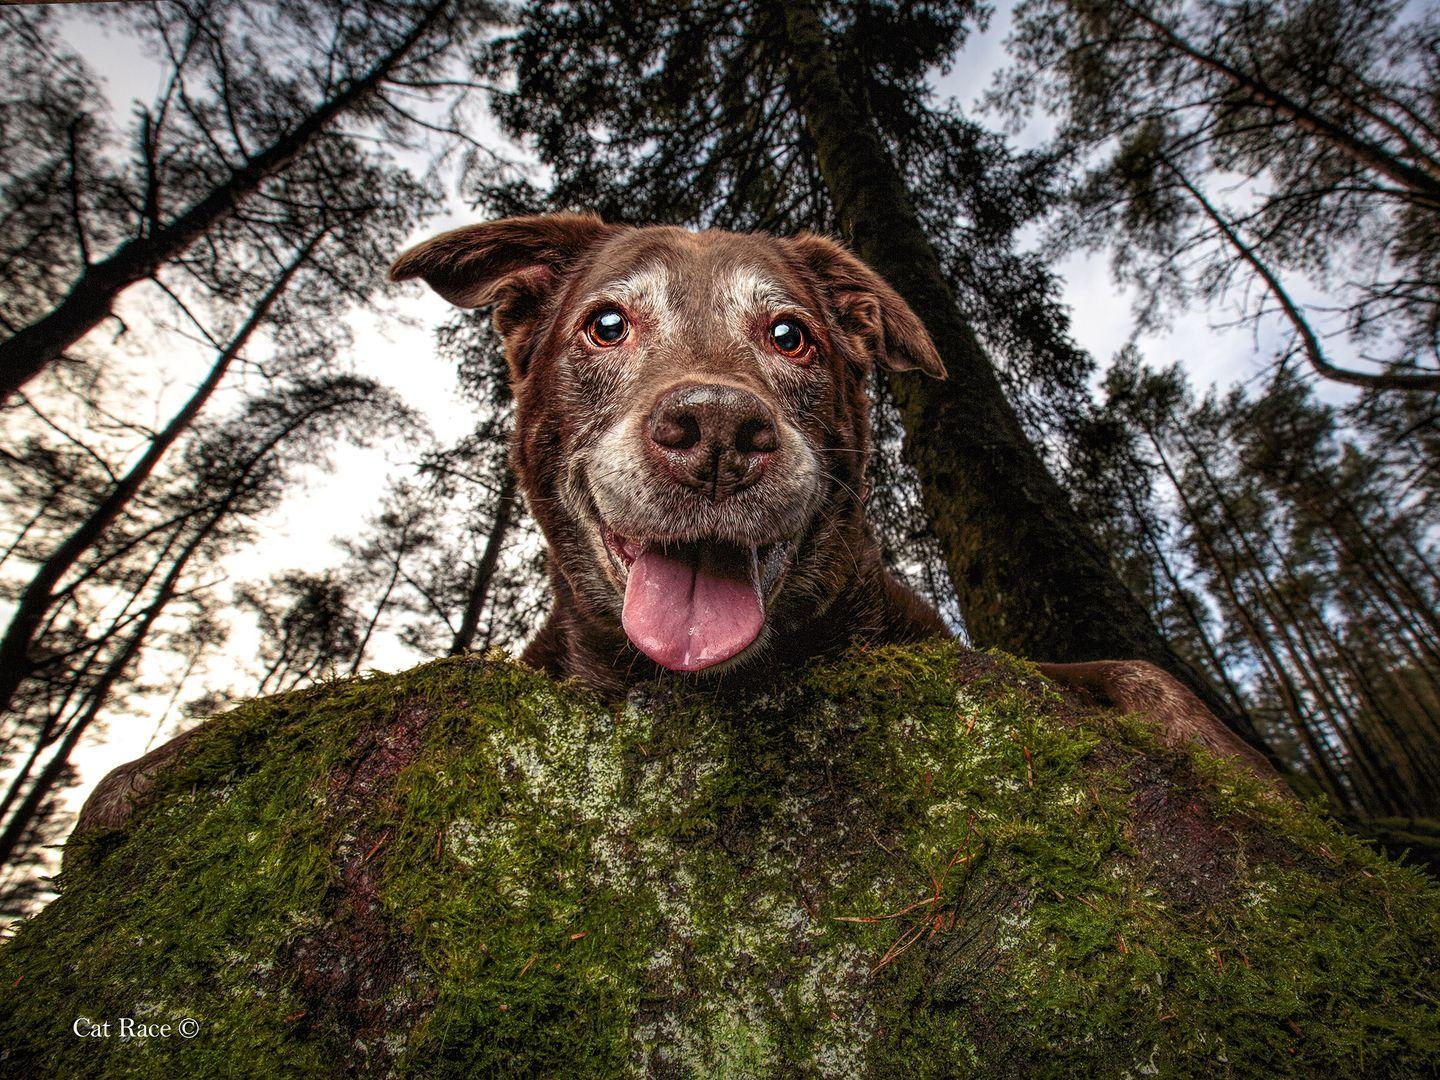 <p>Grey-faced Bailee is a Labrador Retriever and was captured outside on an adventure. </p>